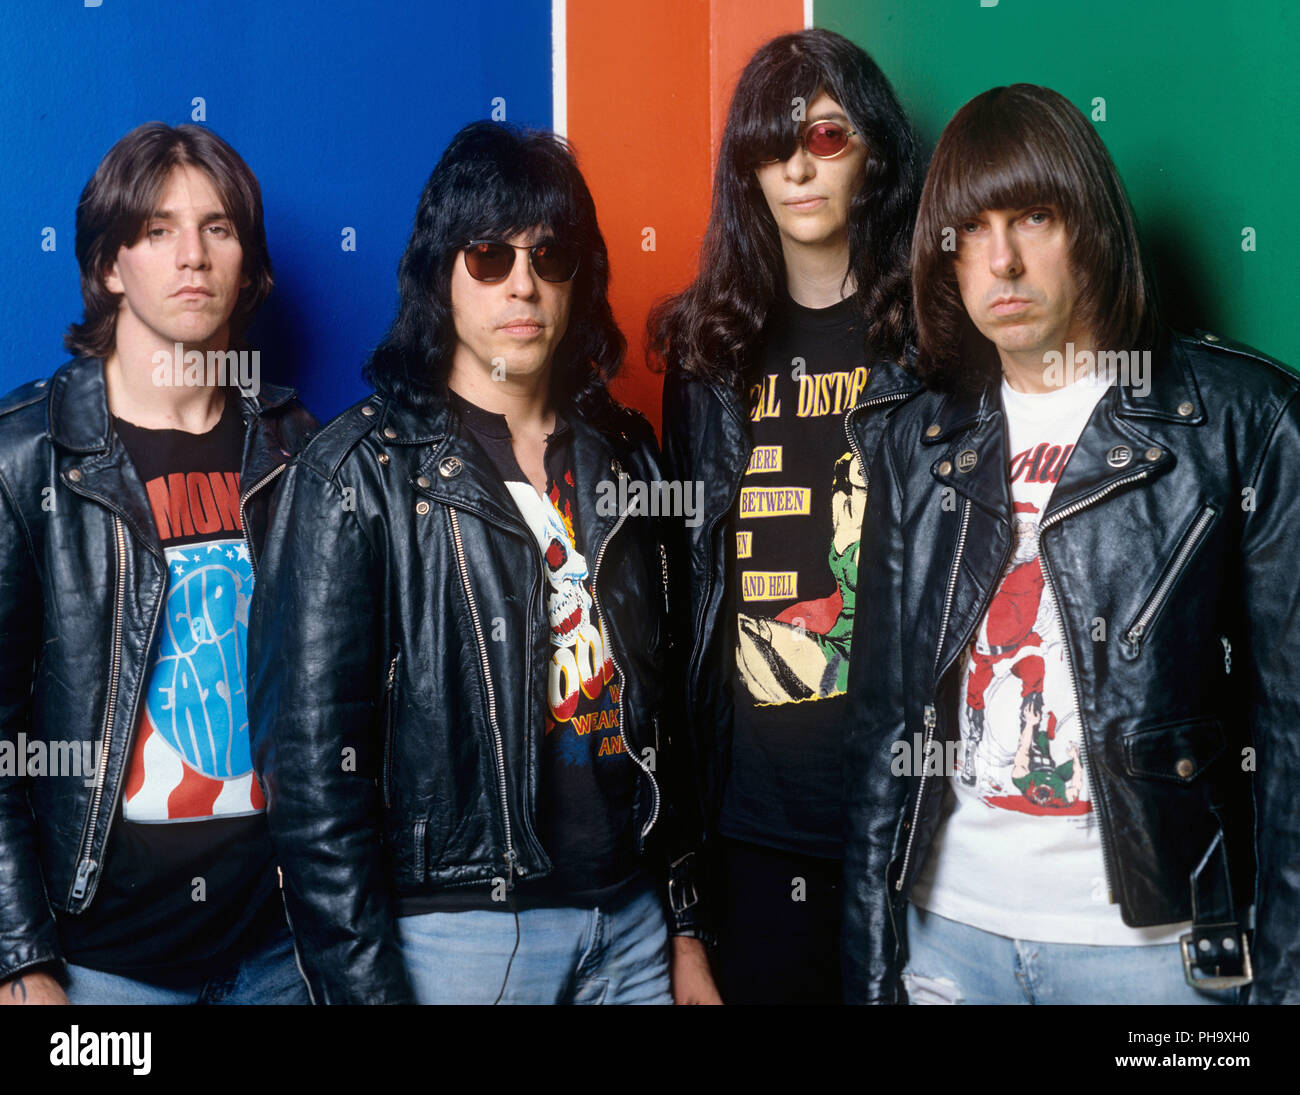 Johnny Ramone High Resolution Stock Photography and Images - Alamy